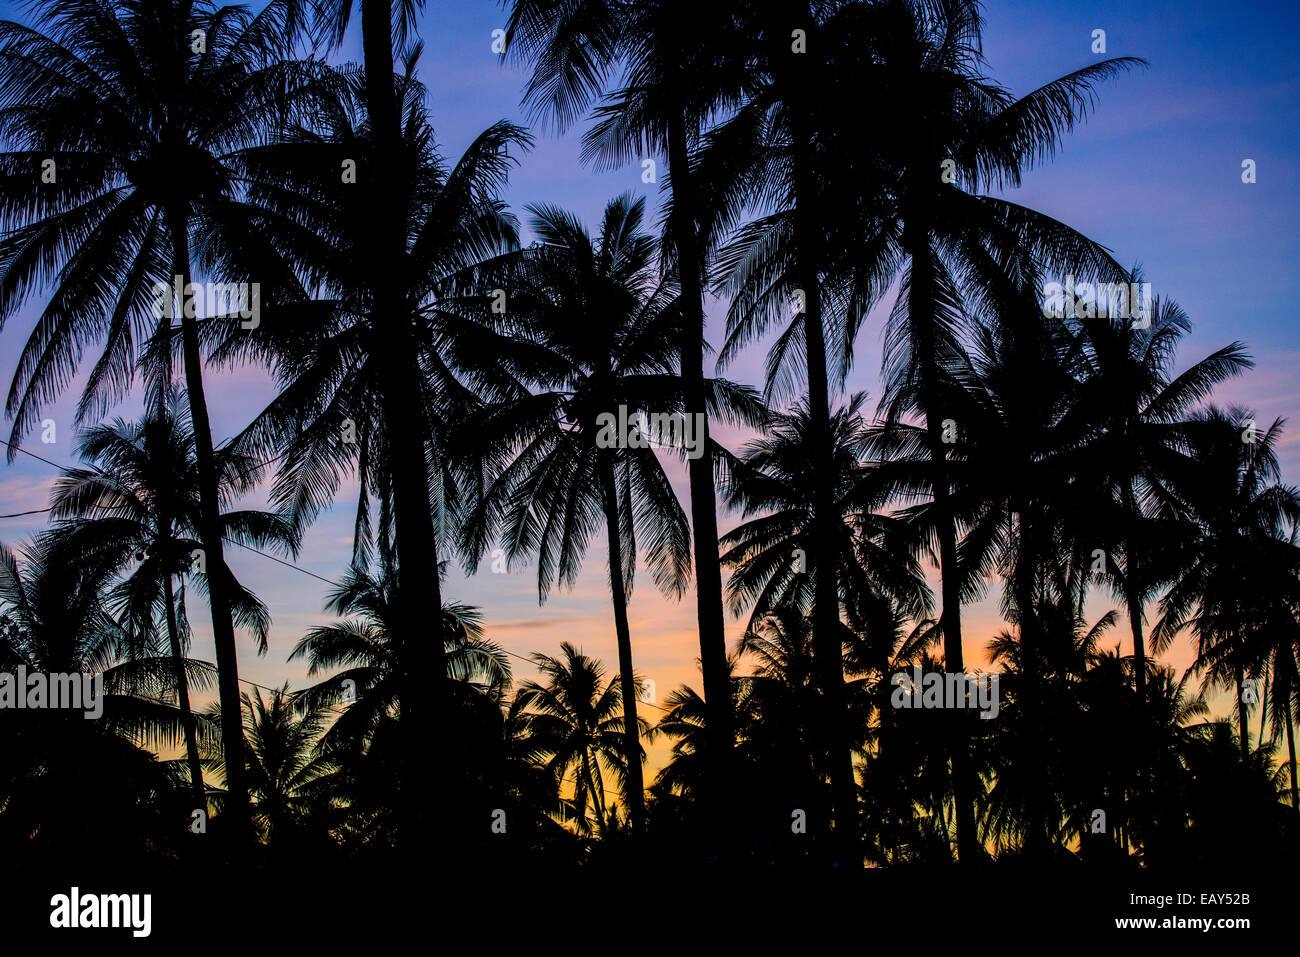 Palm trees, Luzon, Philippines - Stock Image